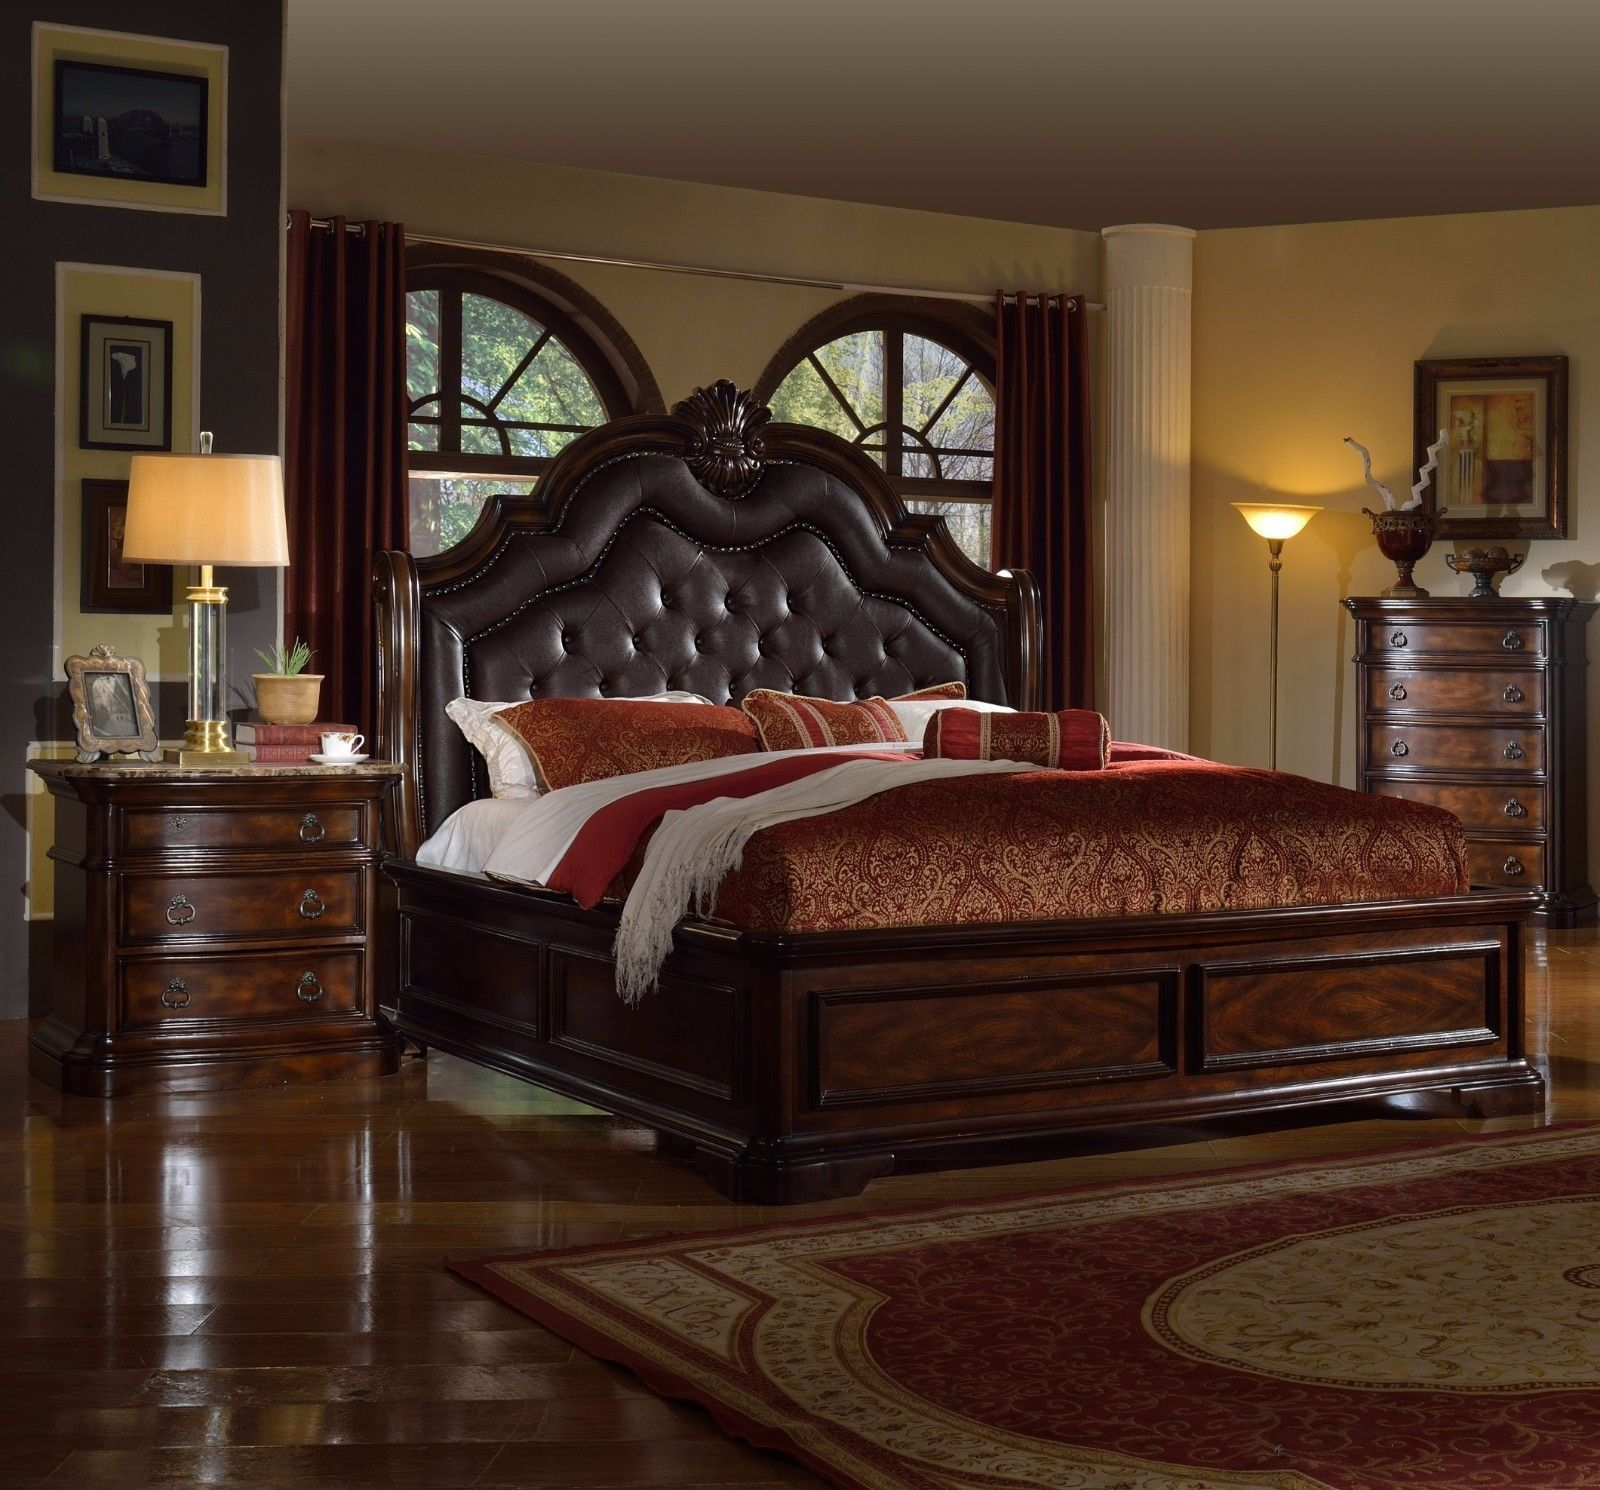 mcferran rb6002 tuscan leather california king size 20386 | s l1600